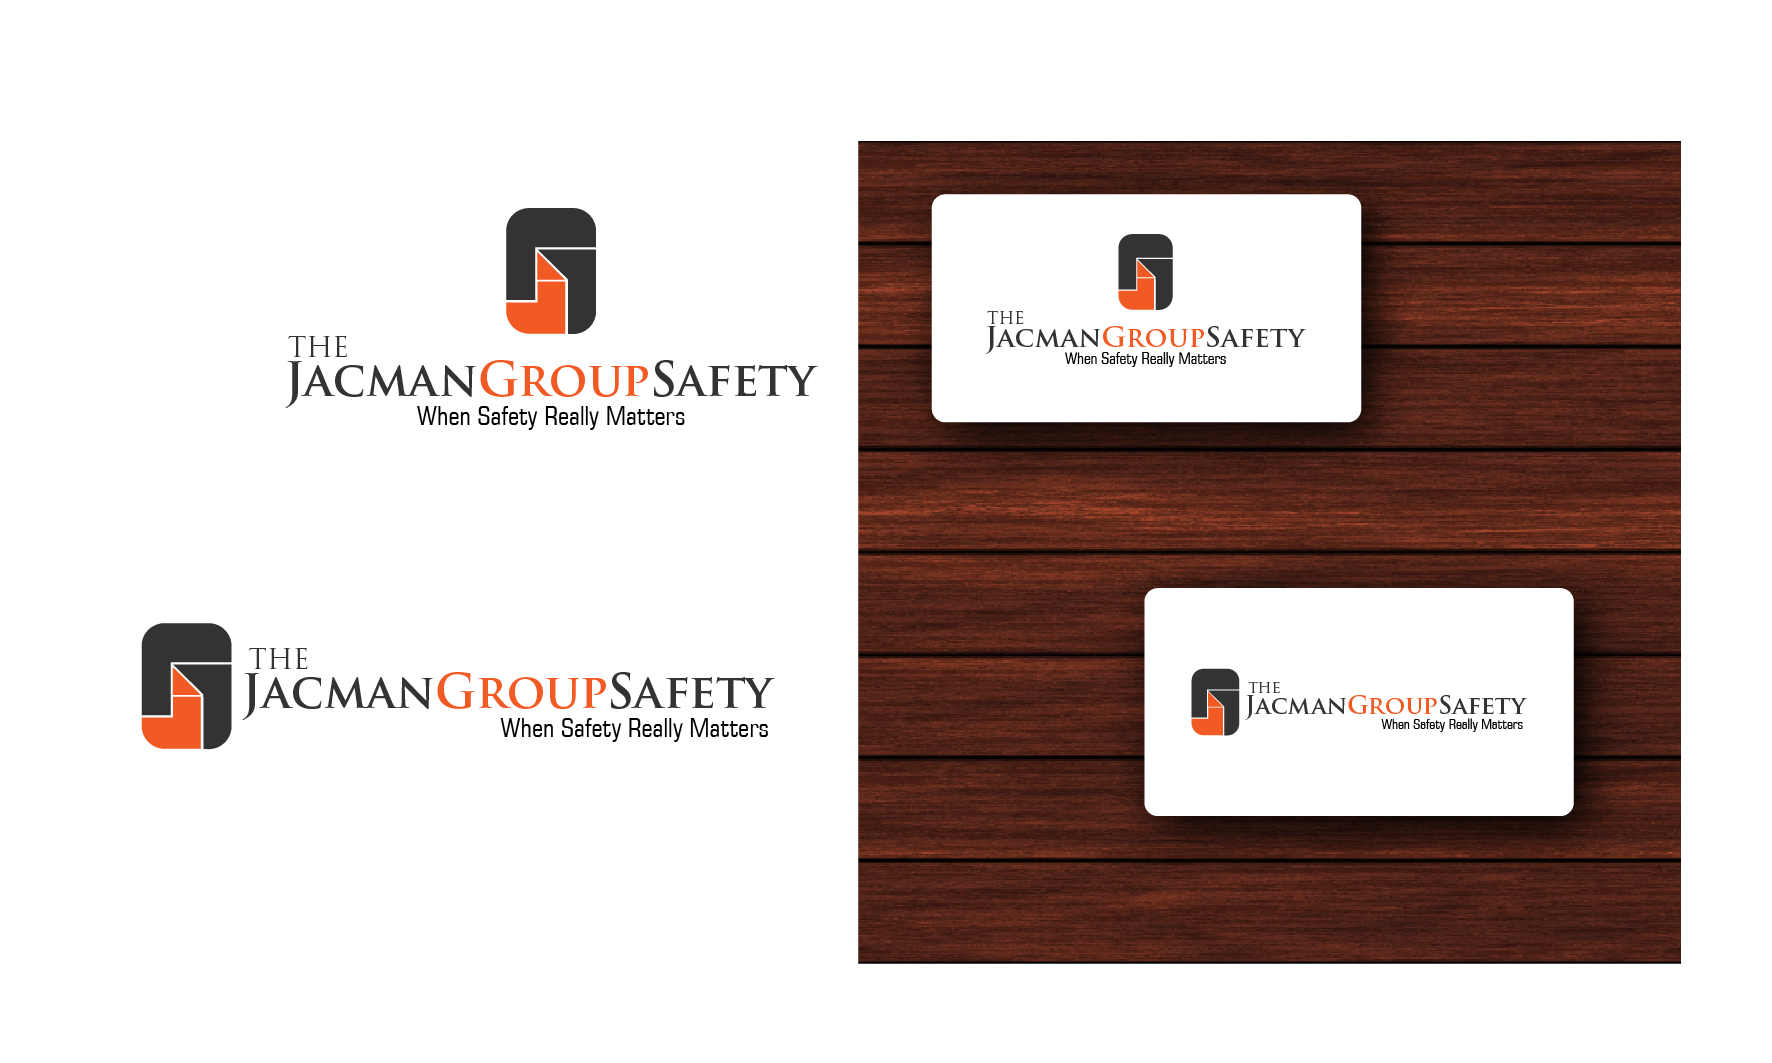 Logo Design by 3draw - Entry No. 53 in the Logo Design Contest The Jacman Group Logo Design.